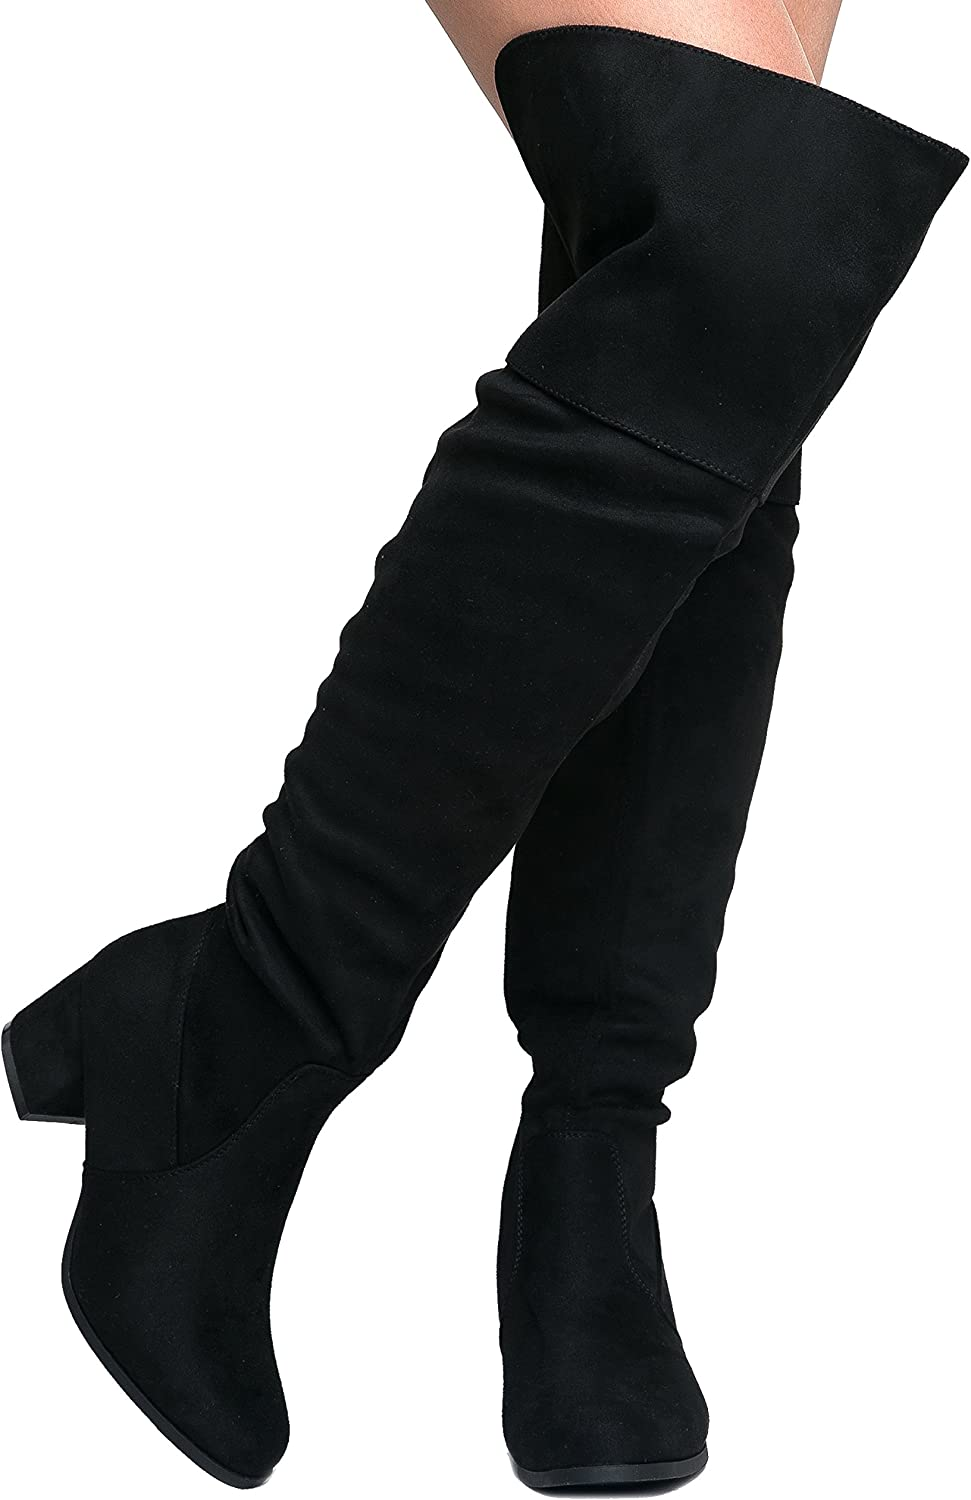 Thigh High Low Heel Boots